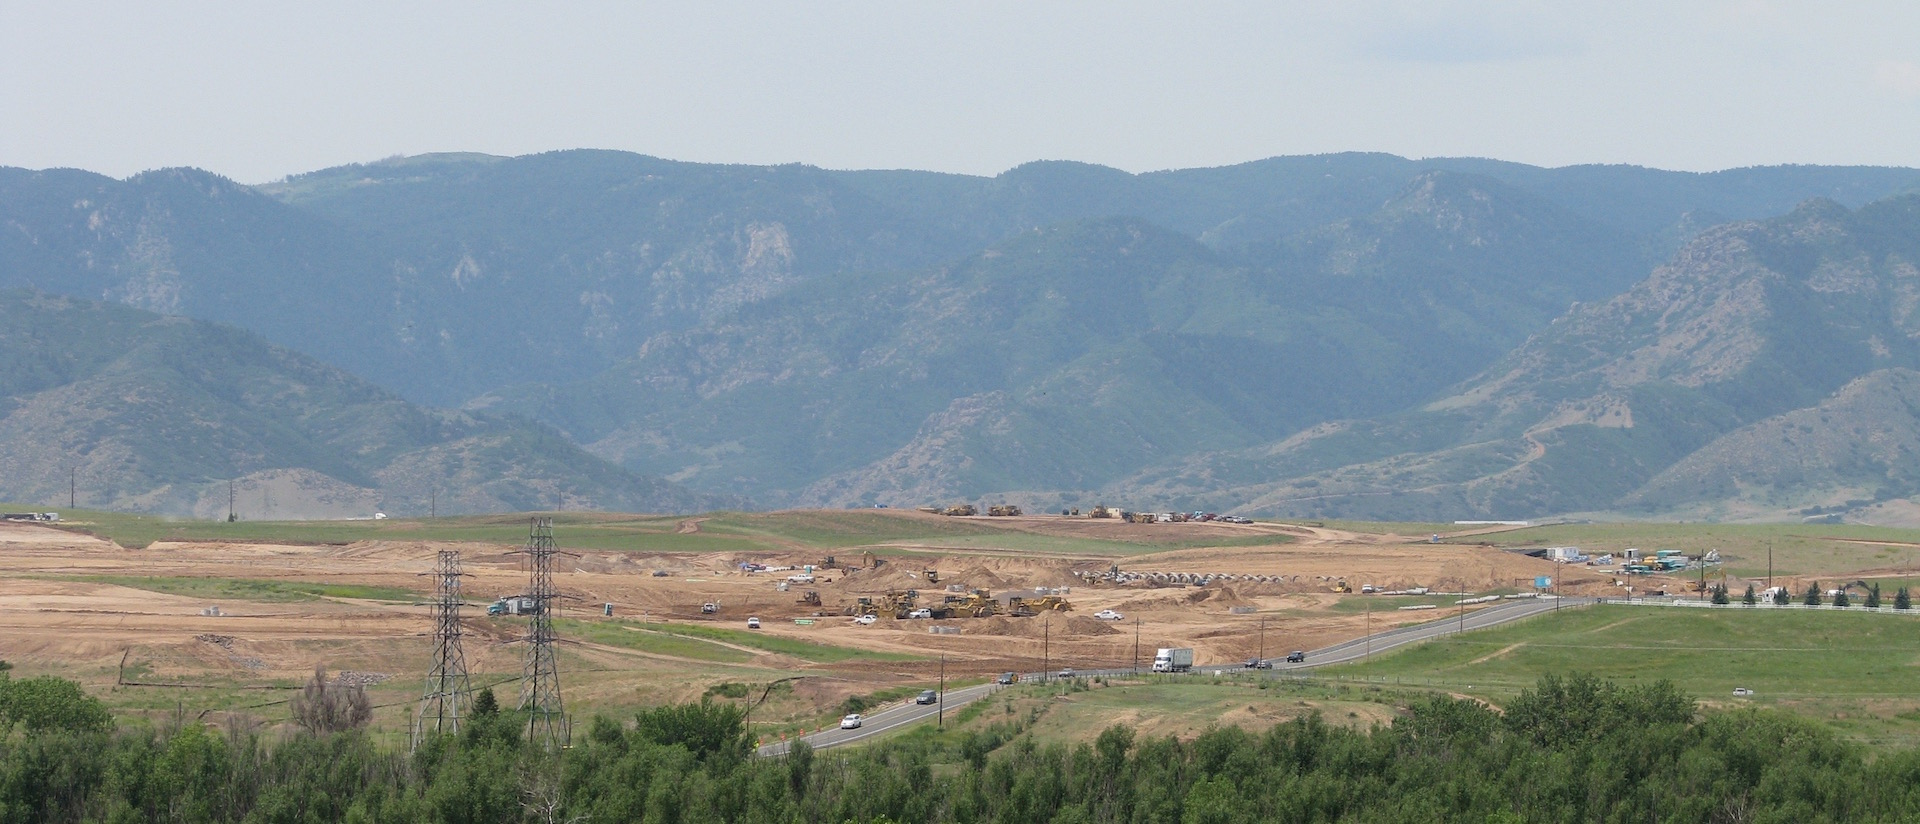 Clearing Land for Sterling Ranch Development, June 2016 (Photograph by D. Saitta)